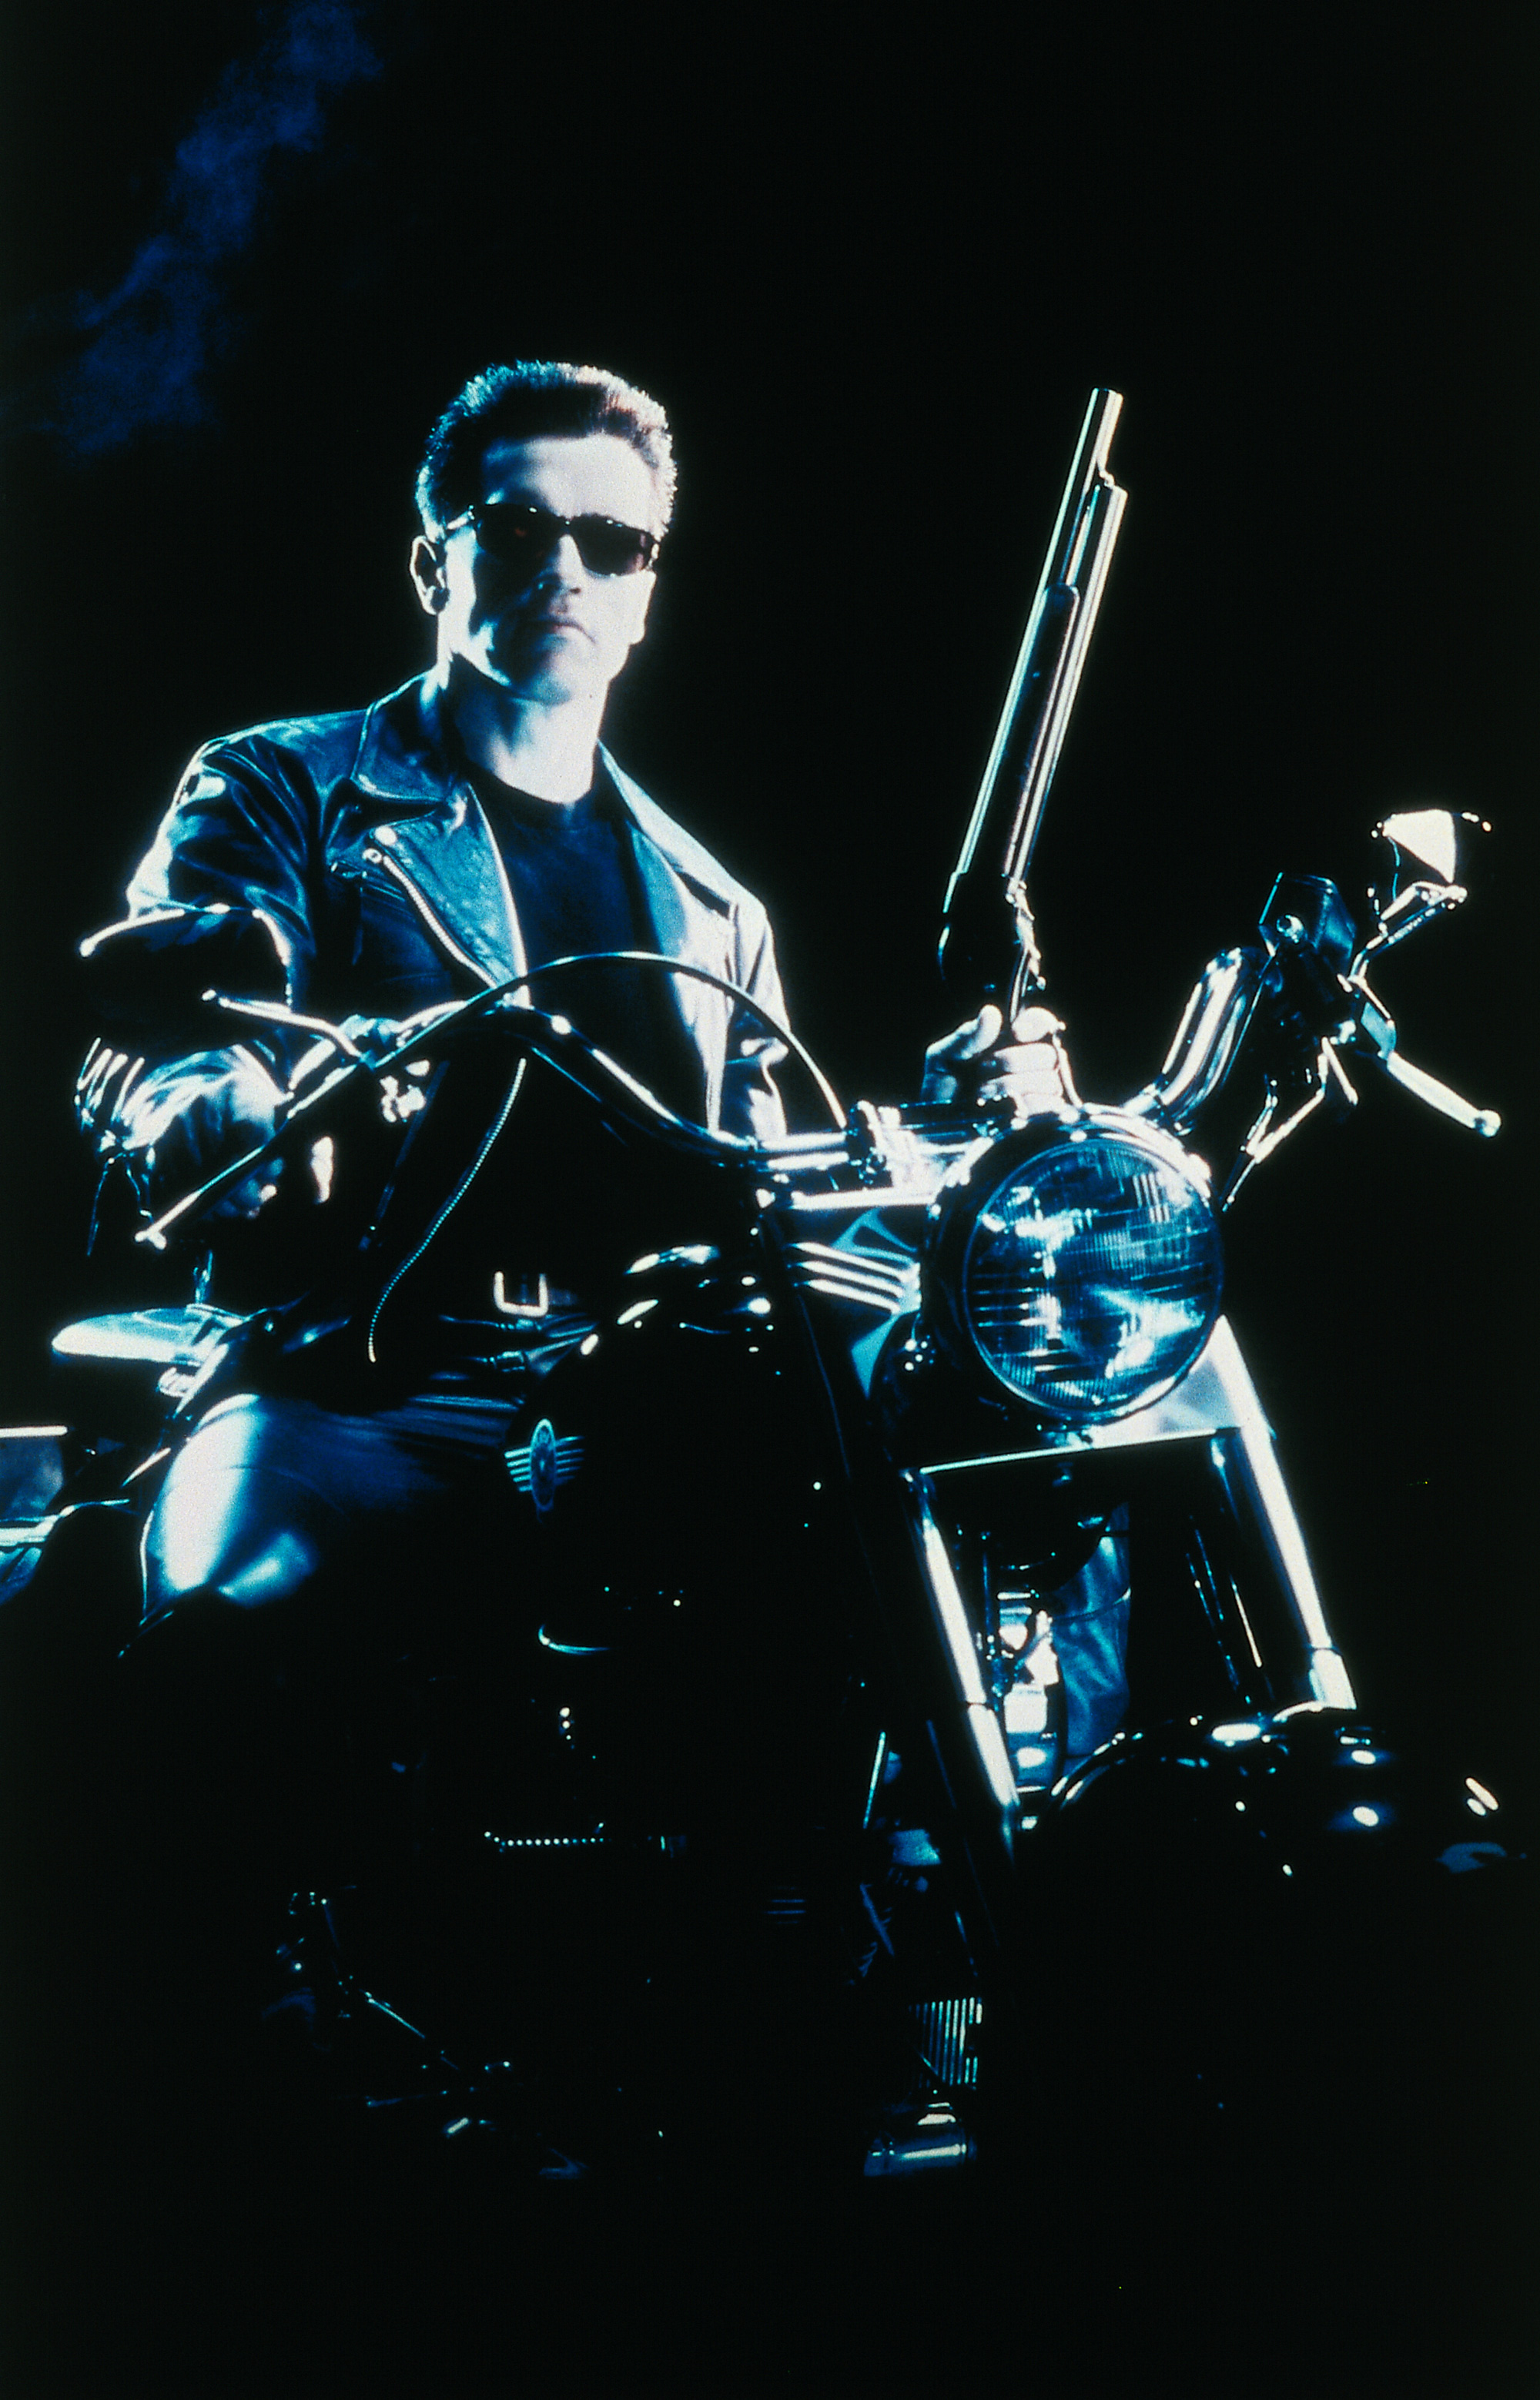 terminator 2 essay A complete summary and analysis of the film terminator 2: judgment day by james cameron.